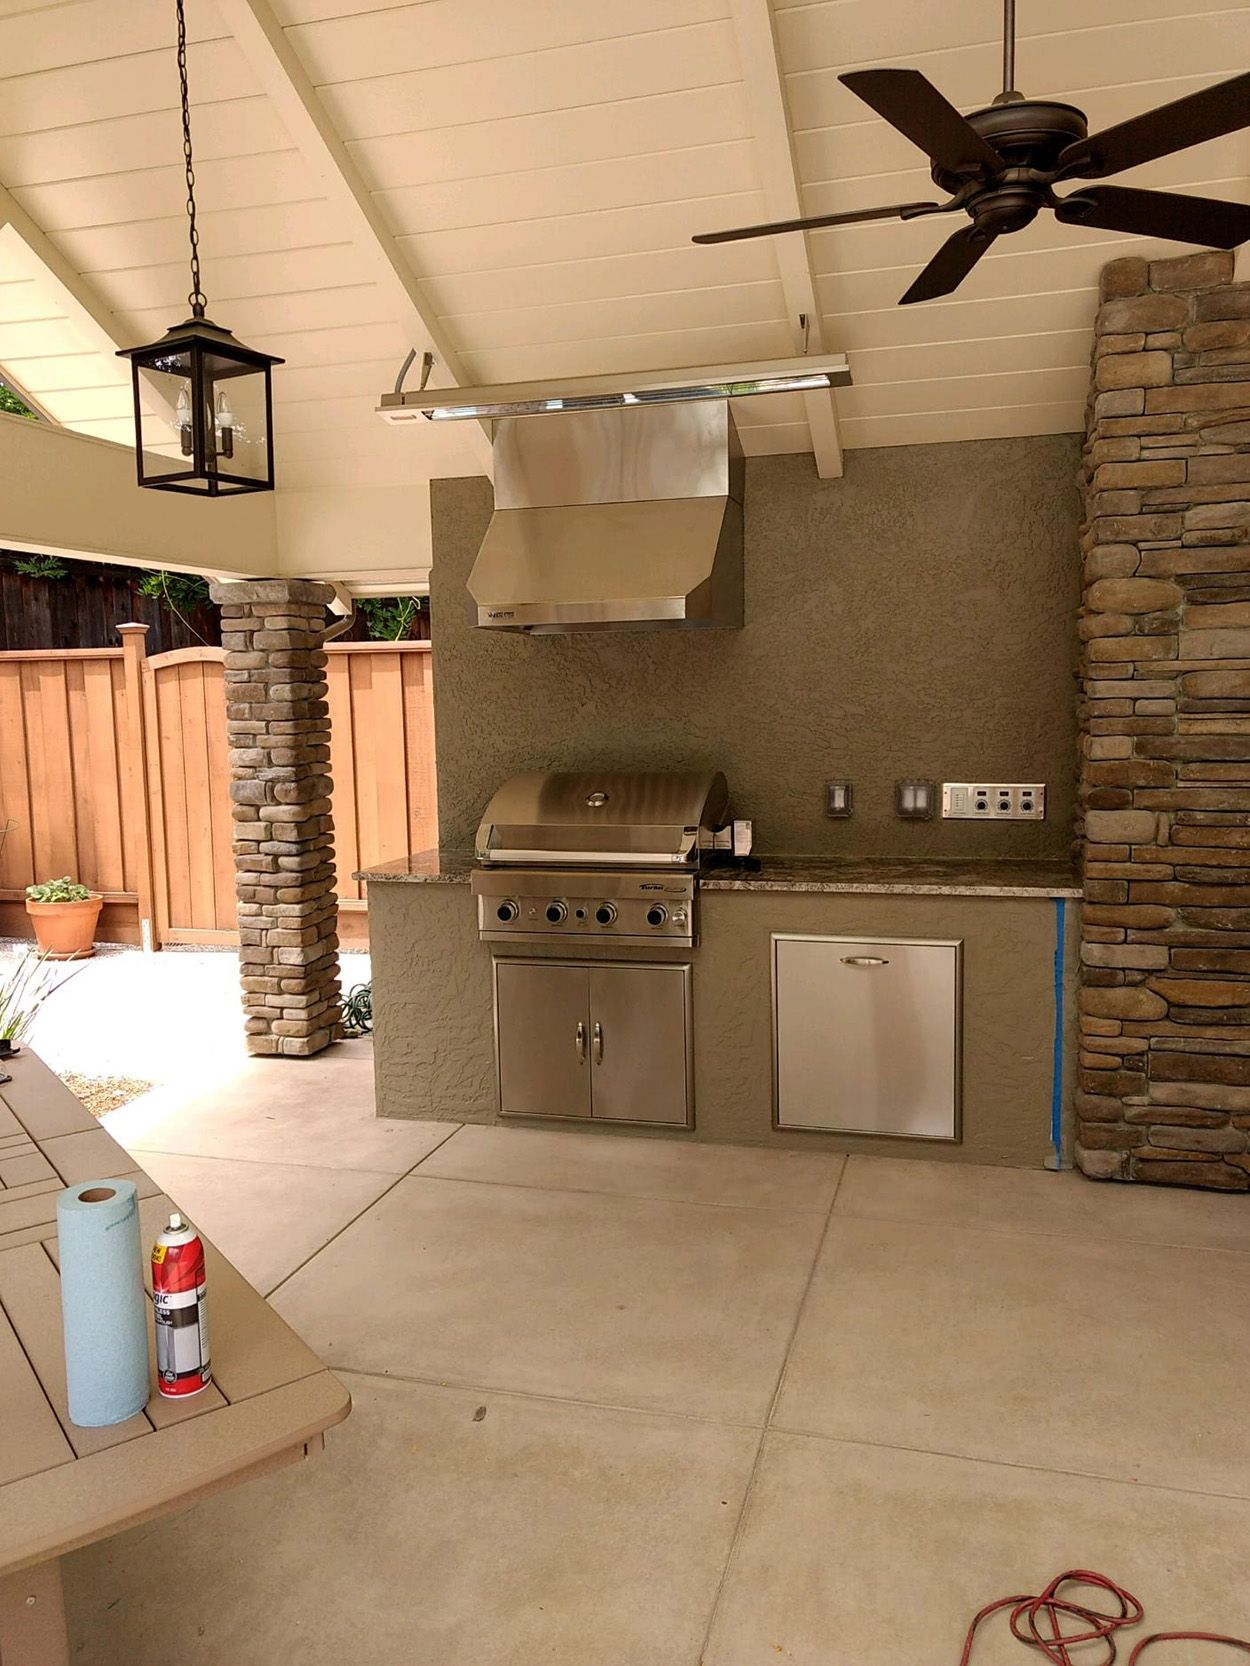 Should I Install A Fan In My Outdoor Kitchen Outdoor Kitchen Outdoor Kitchen Design Outdoor Living Rooms